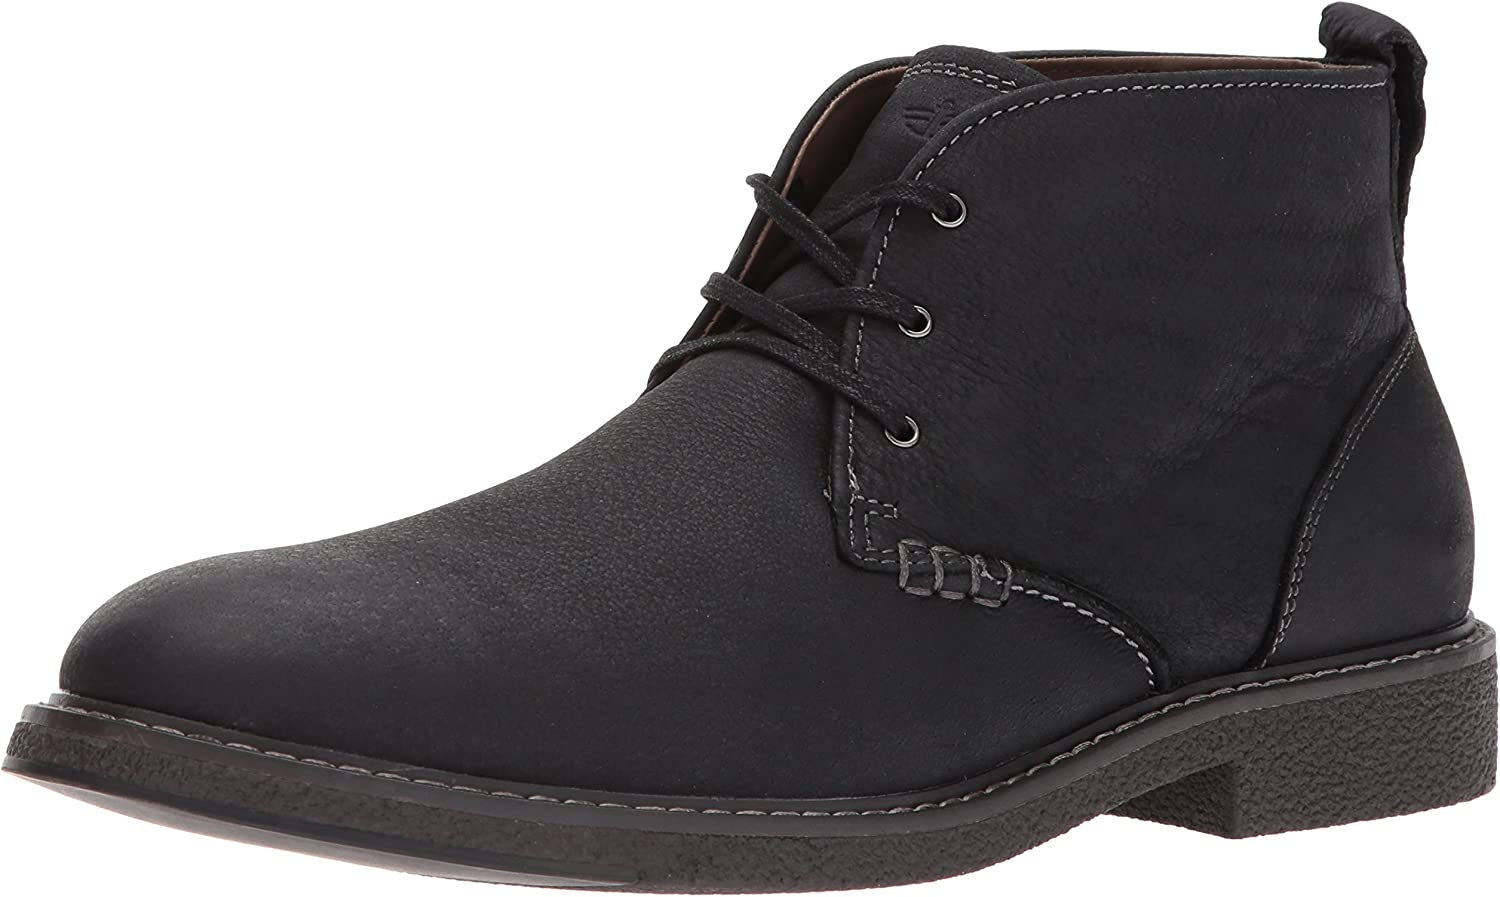 Dockers Men's Selling and selling Tulane Chukka Boot Ranking TOP11